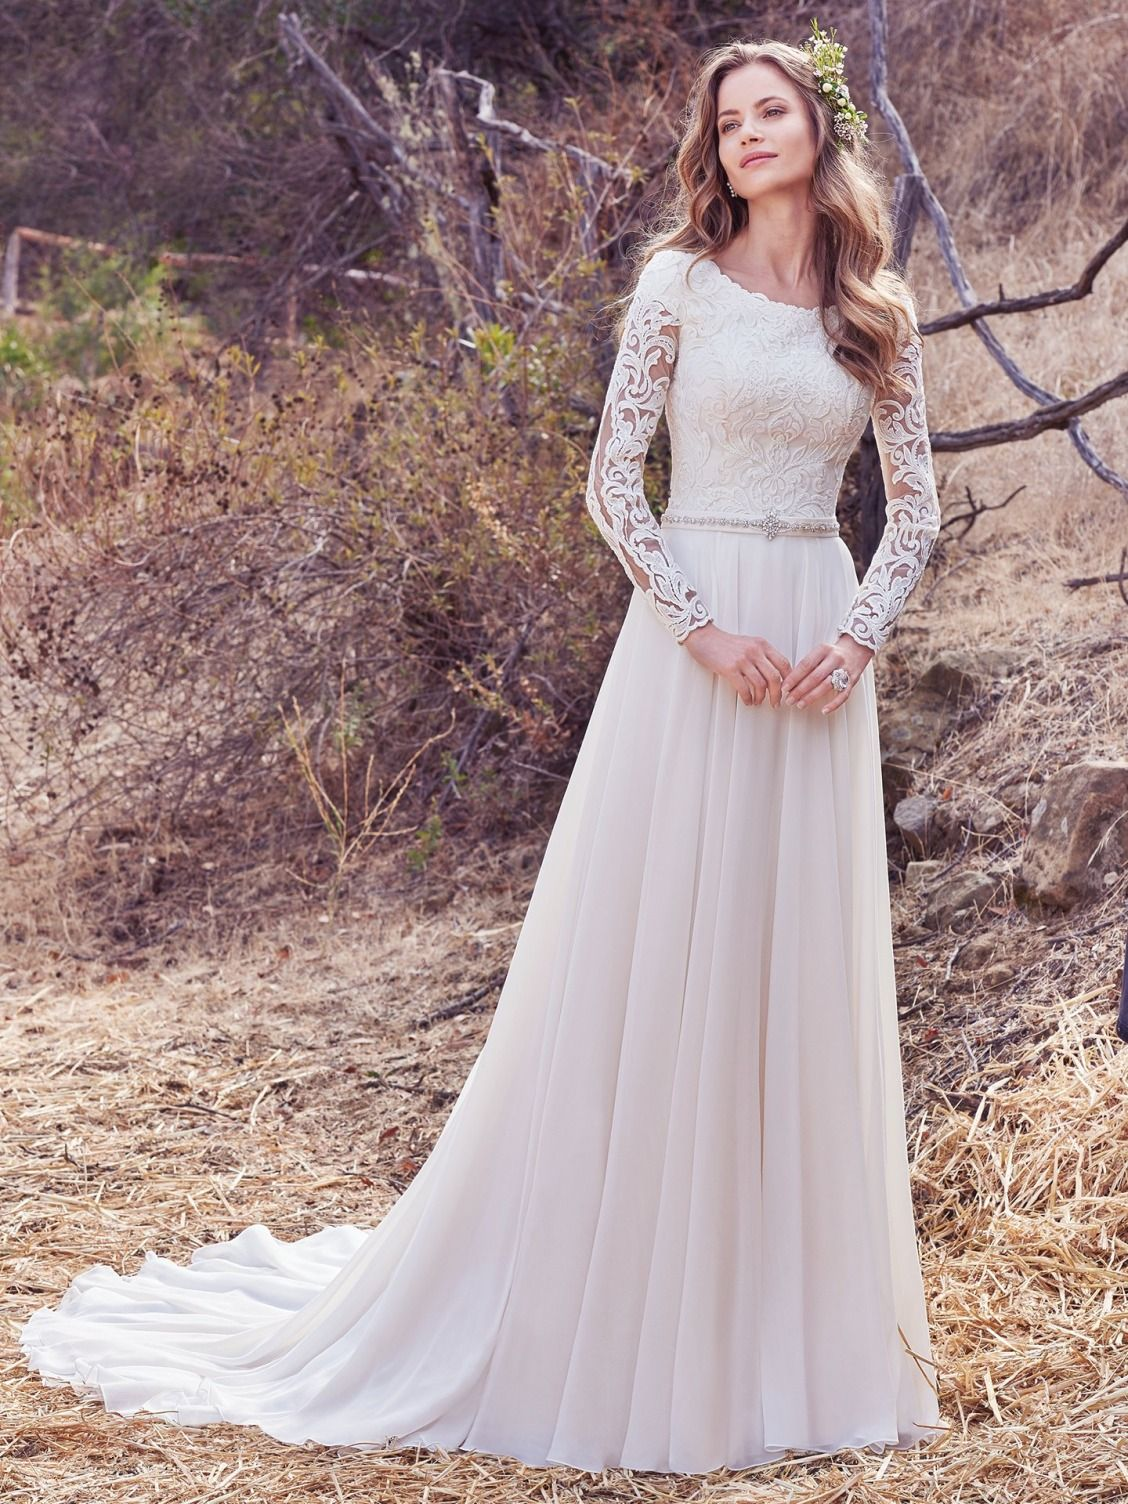 Modest long sleeve wedding gown  Maggie Sottero  DARCY MARIE This Aurora Chiffon Aline wedding